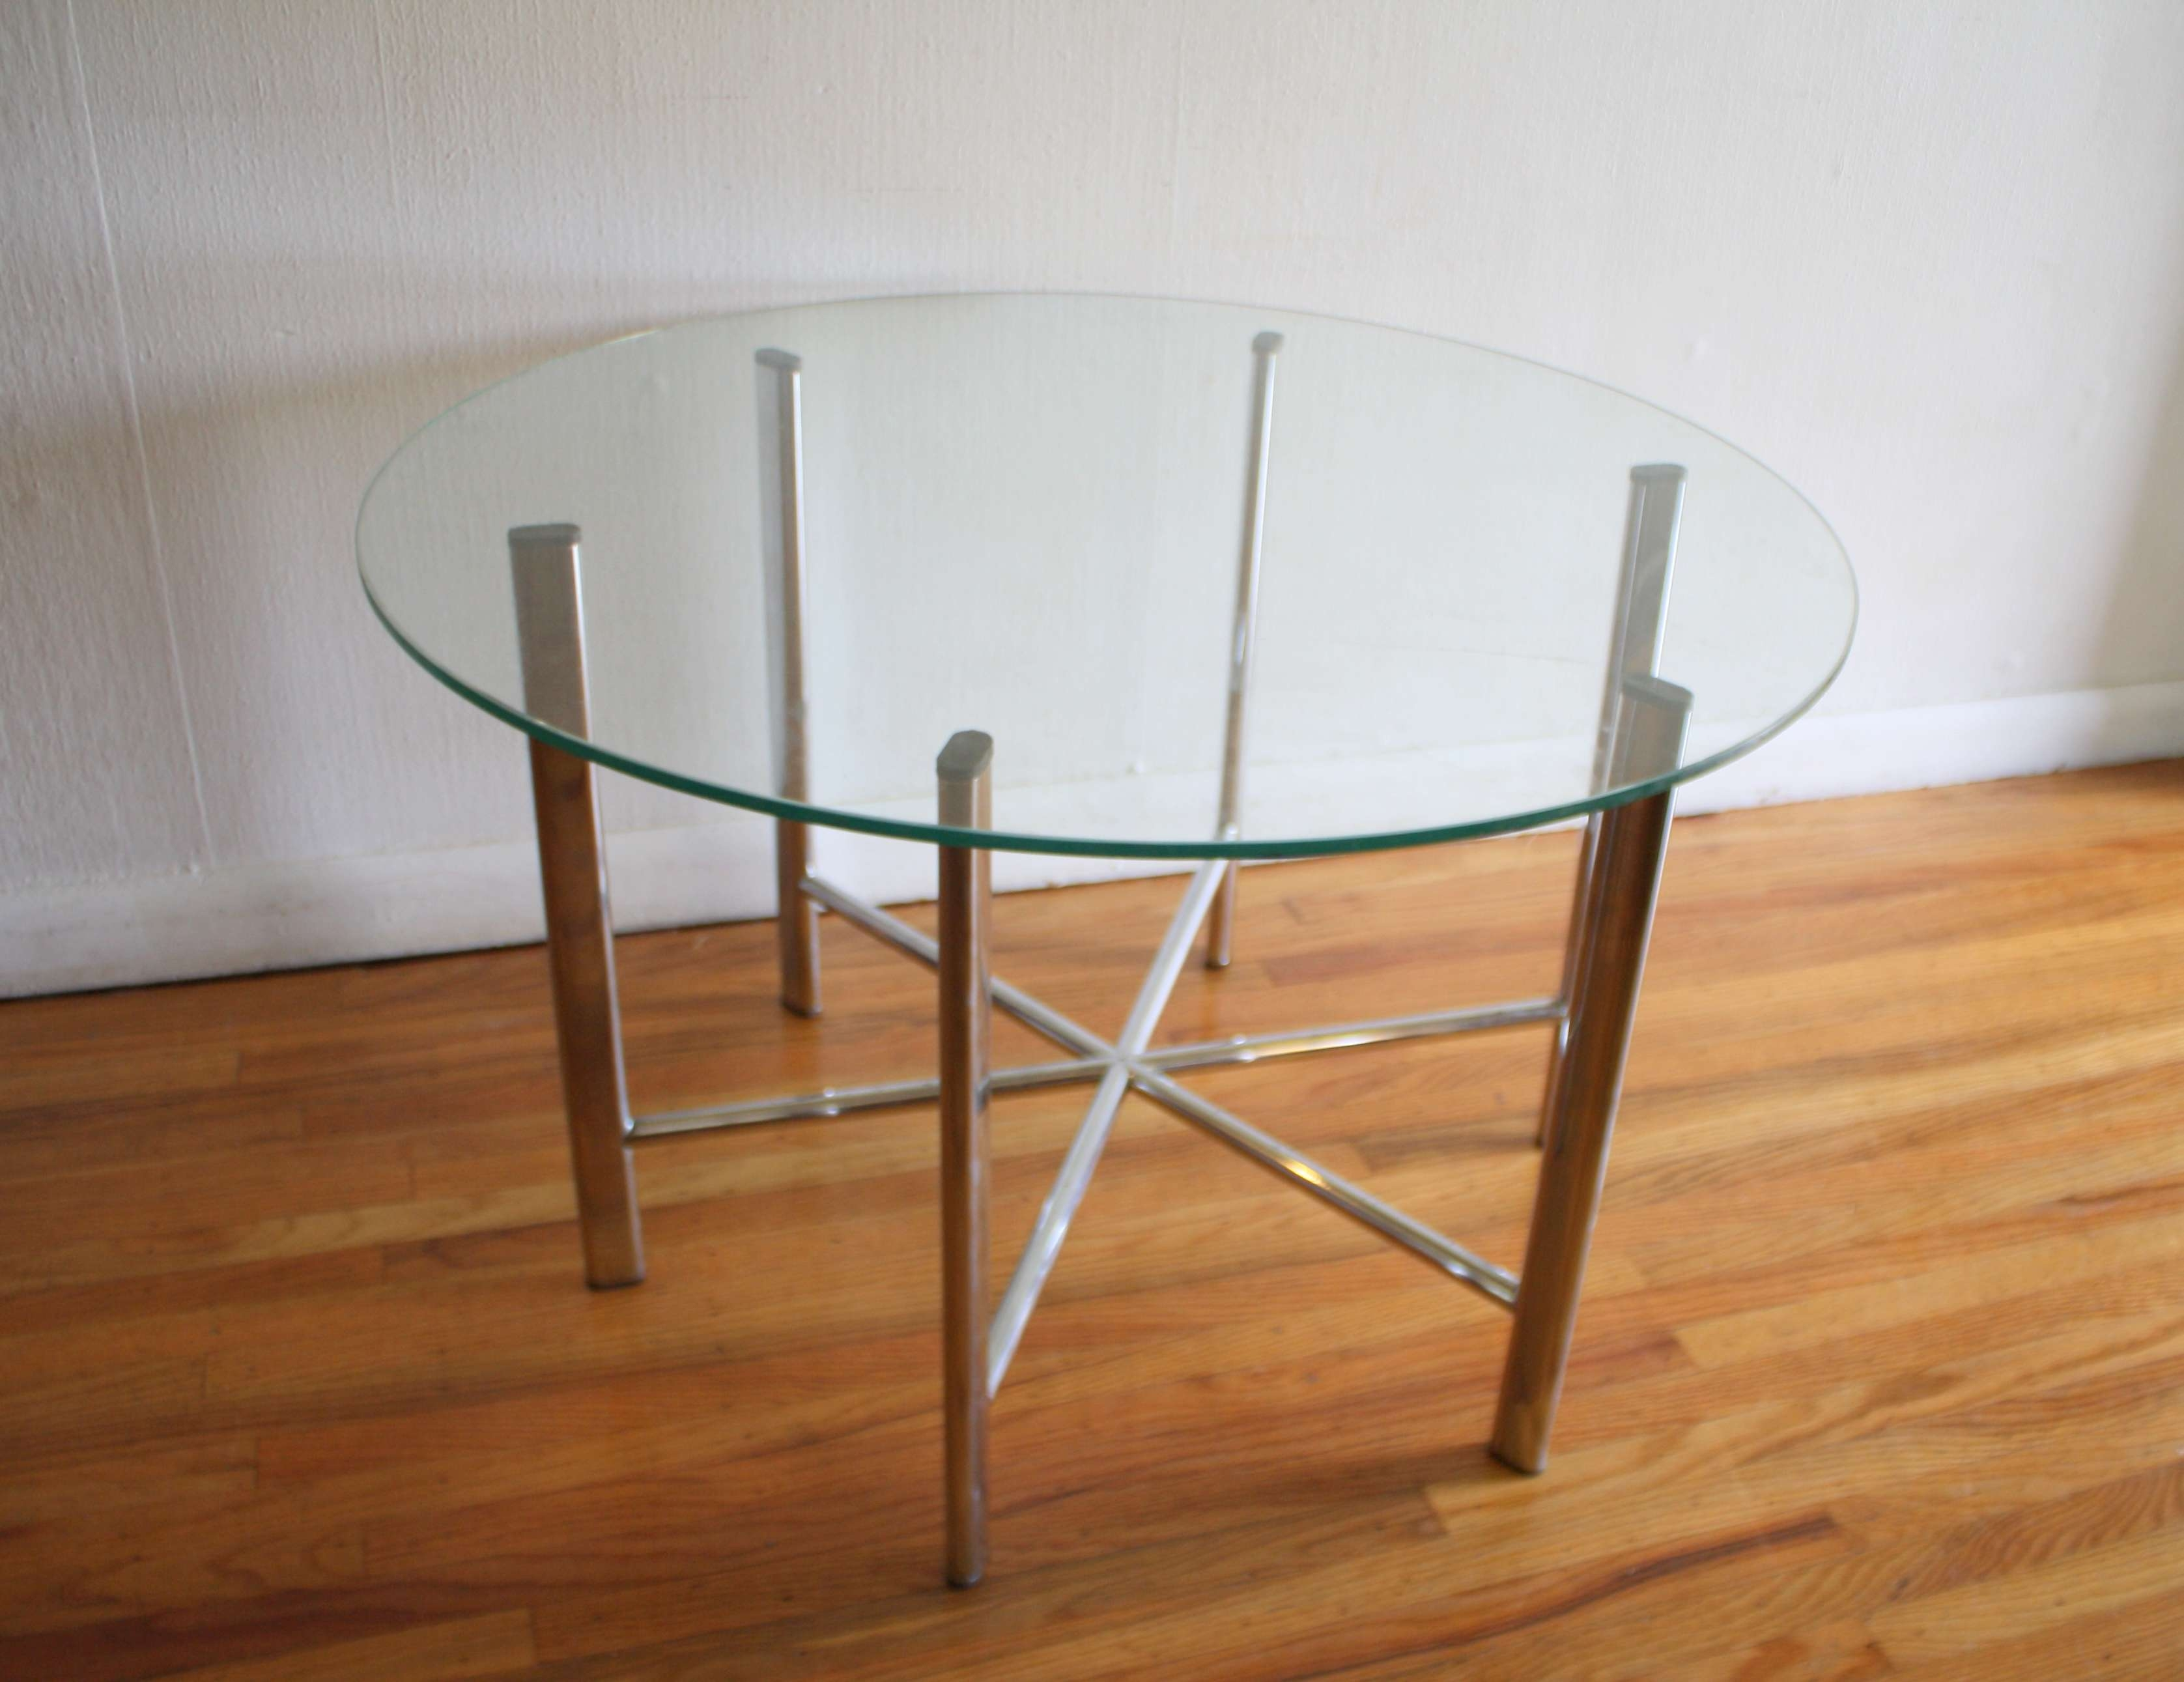 Amazing Elephant Glass Coffee Table – Mediasupload Pertaining To Well Known Elephant Glass Top Coffee Tables (Gallery 16 of 20)